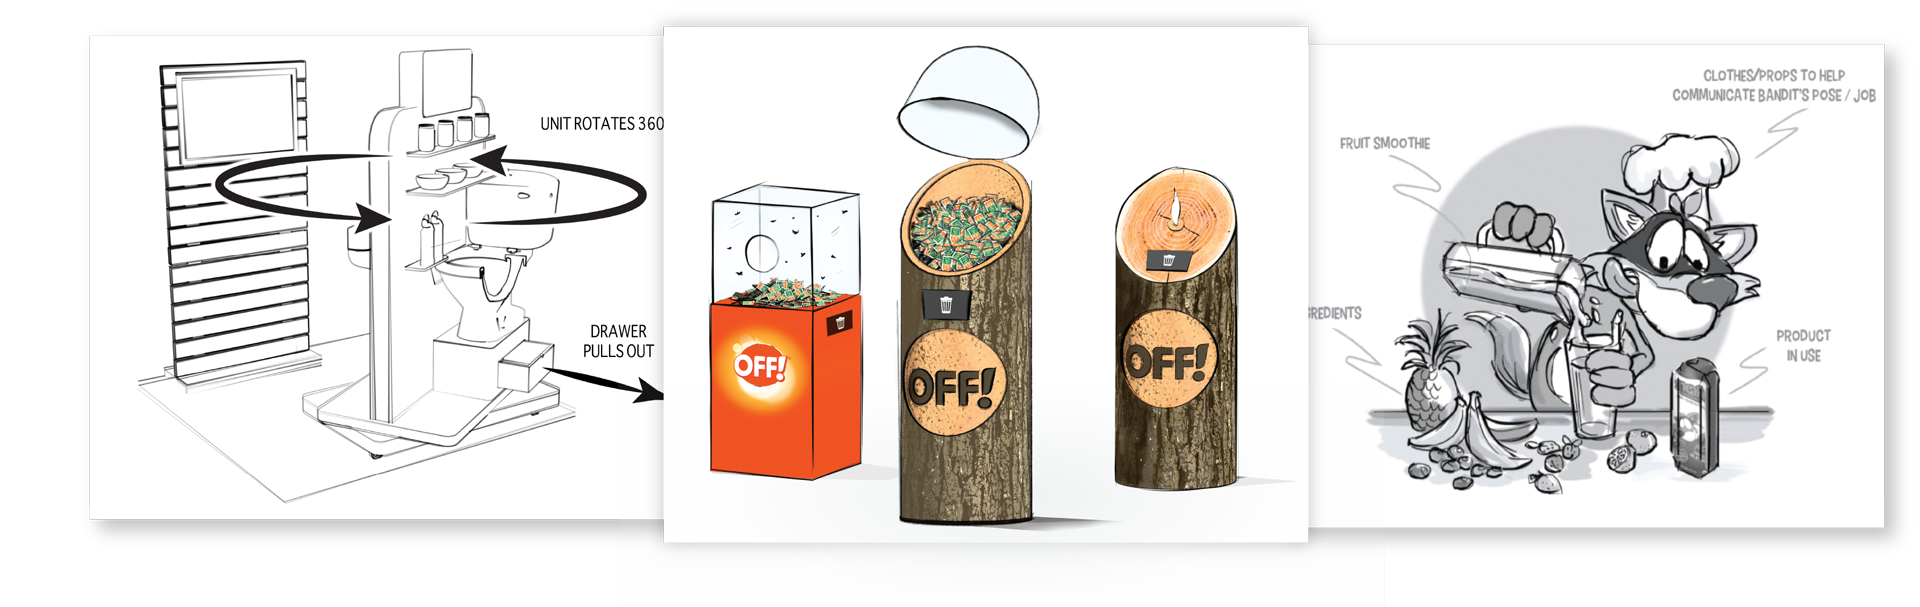 Concept illustration slides of OFF! and Glade displays along with a Sneakz concept.